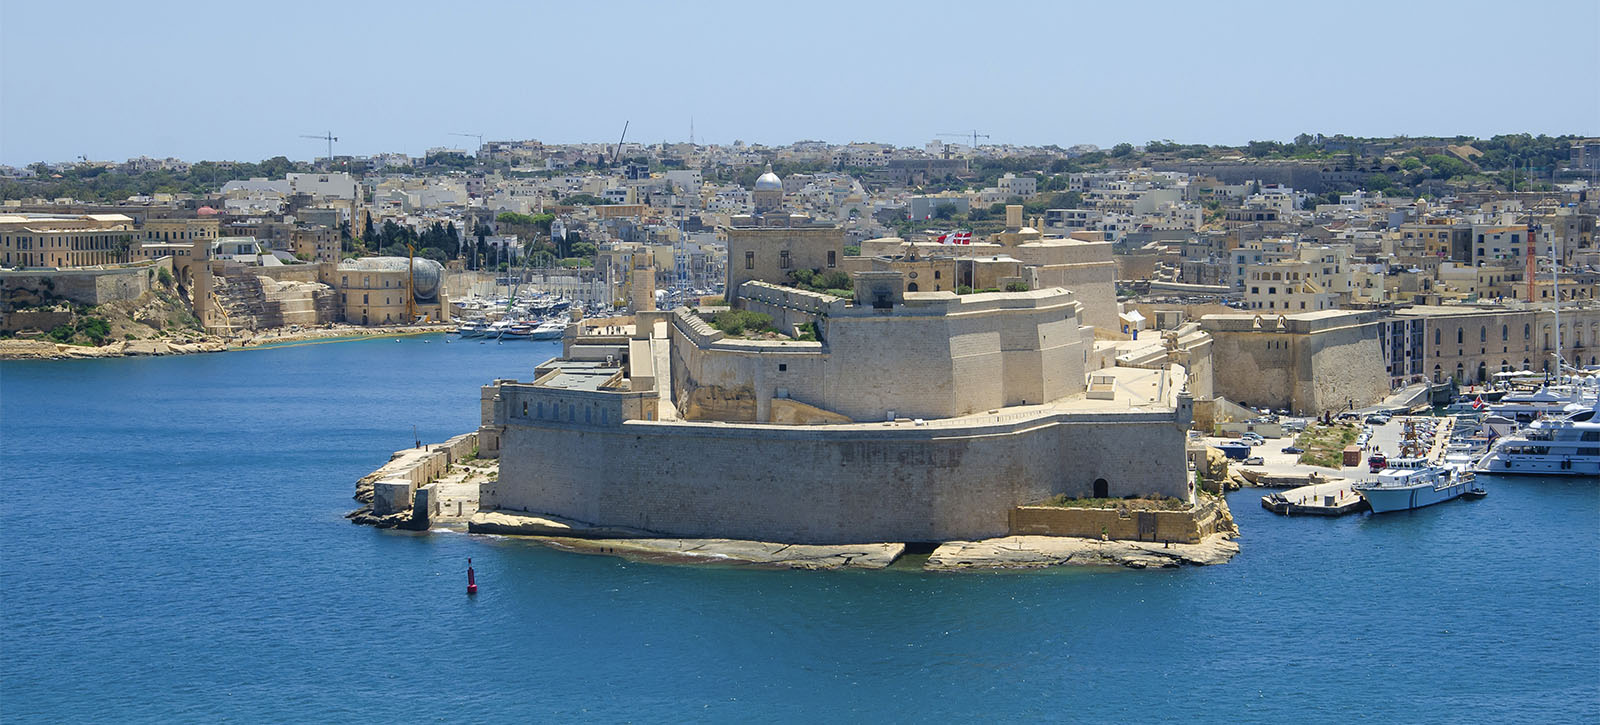 Malta Citizenship by Investment Program from €1.2 million.